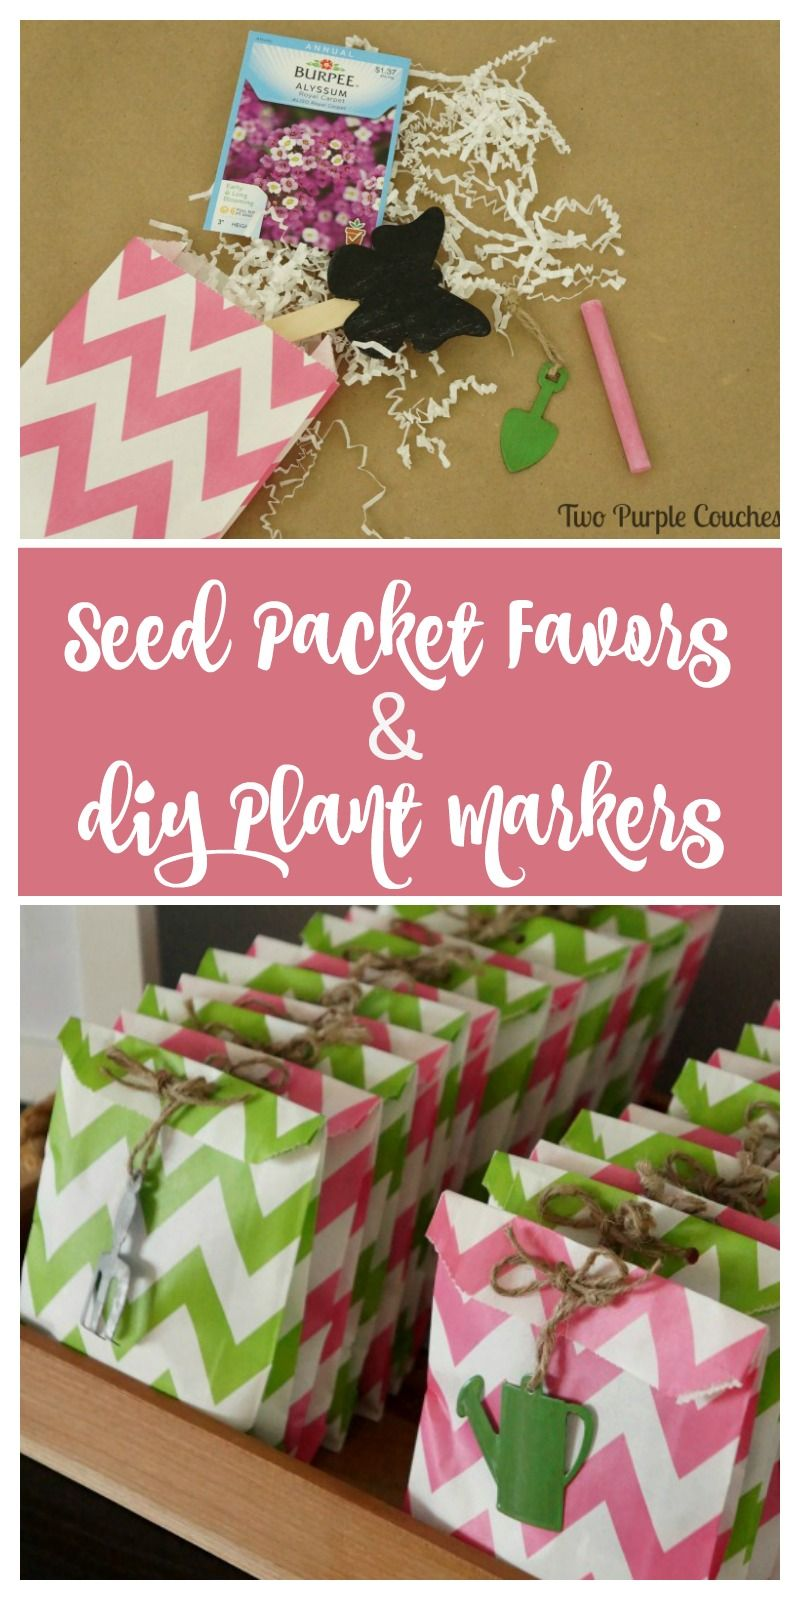 Seed Packet Favors with DIY Chalkboard Plant Markers | Crazy for DIY ...